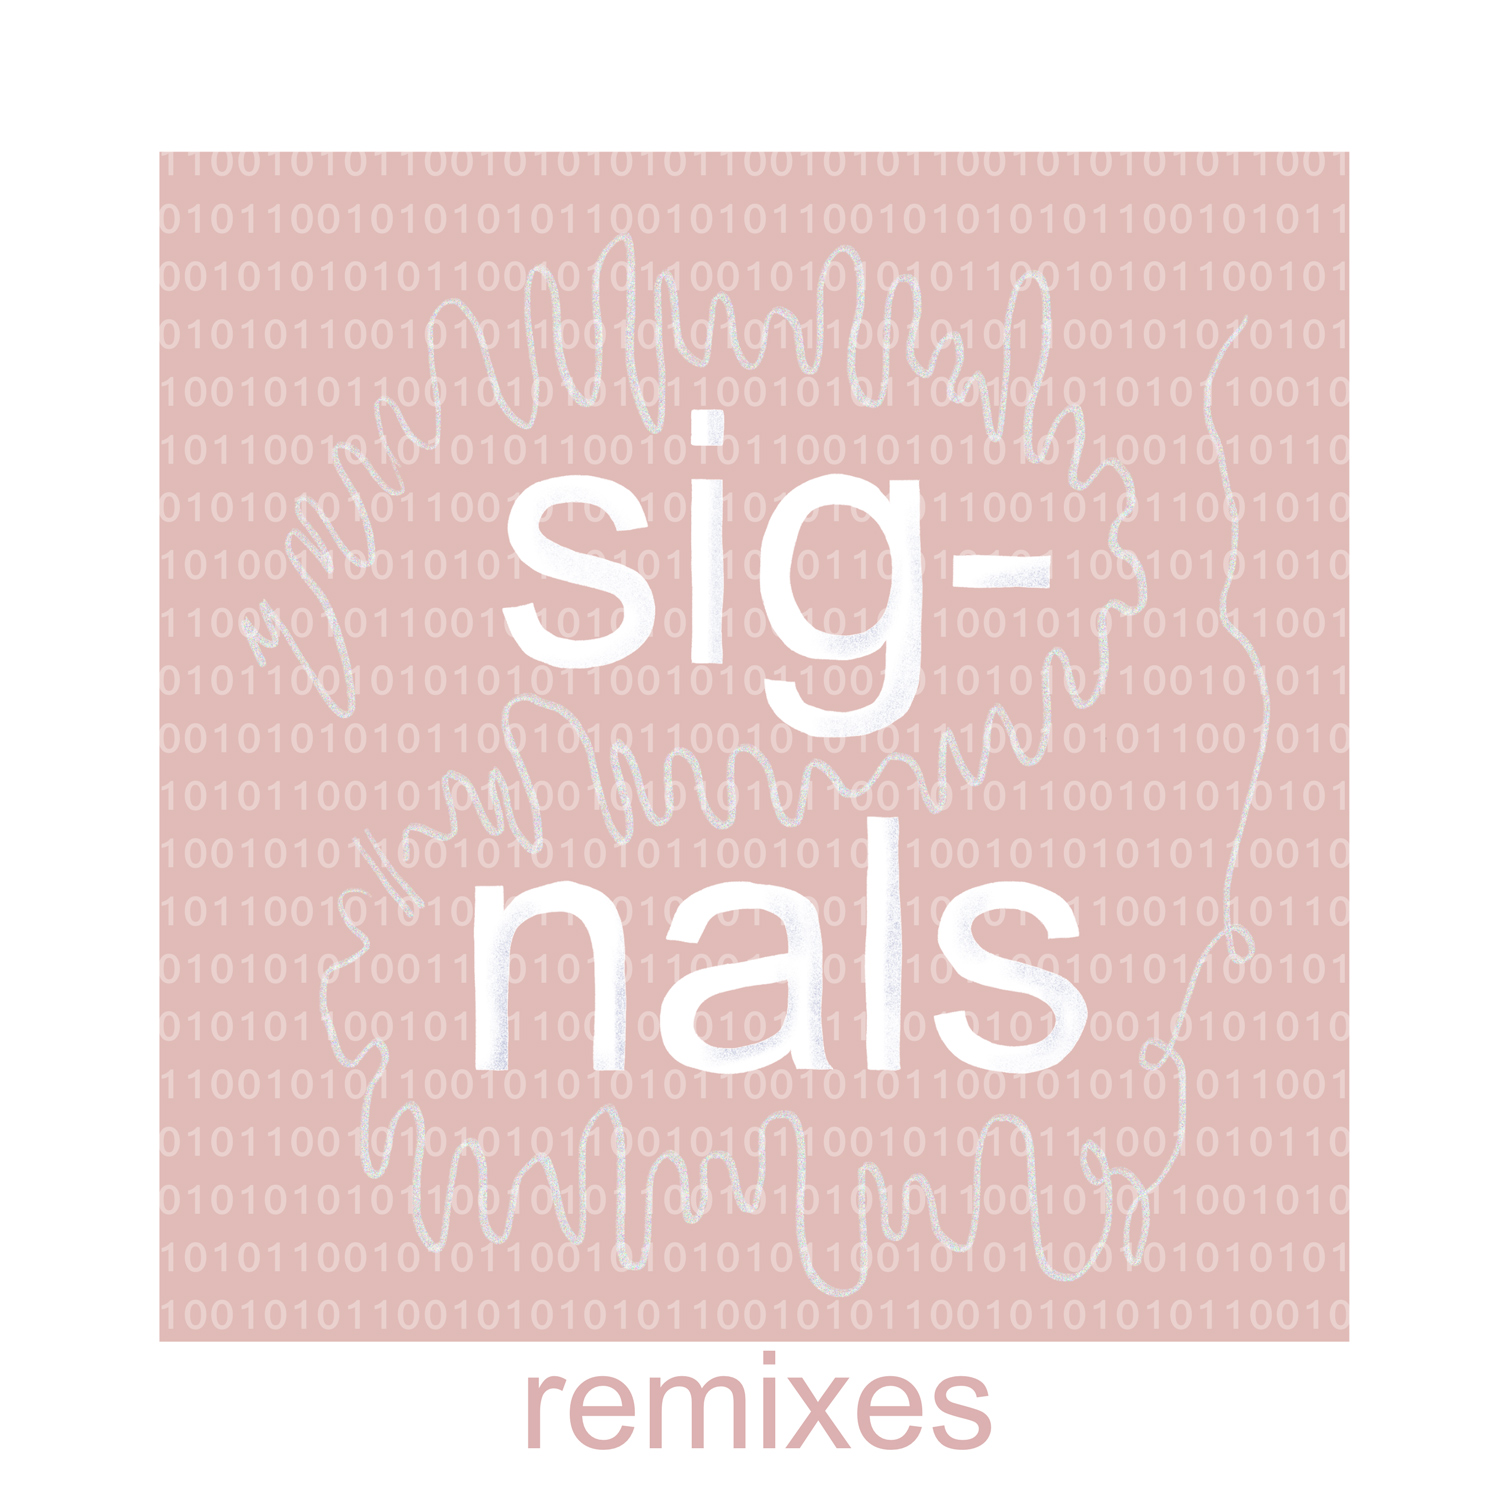 zalagasper_signals_remix_artwork